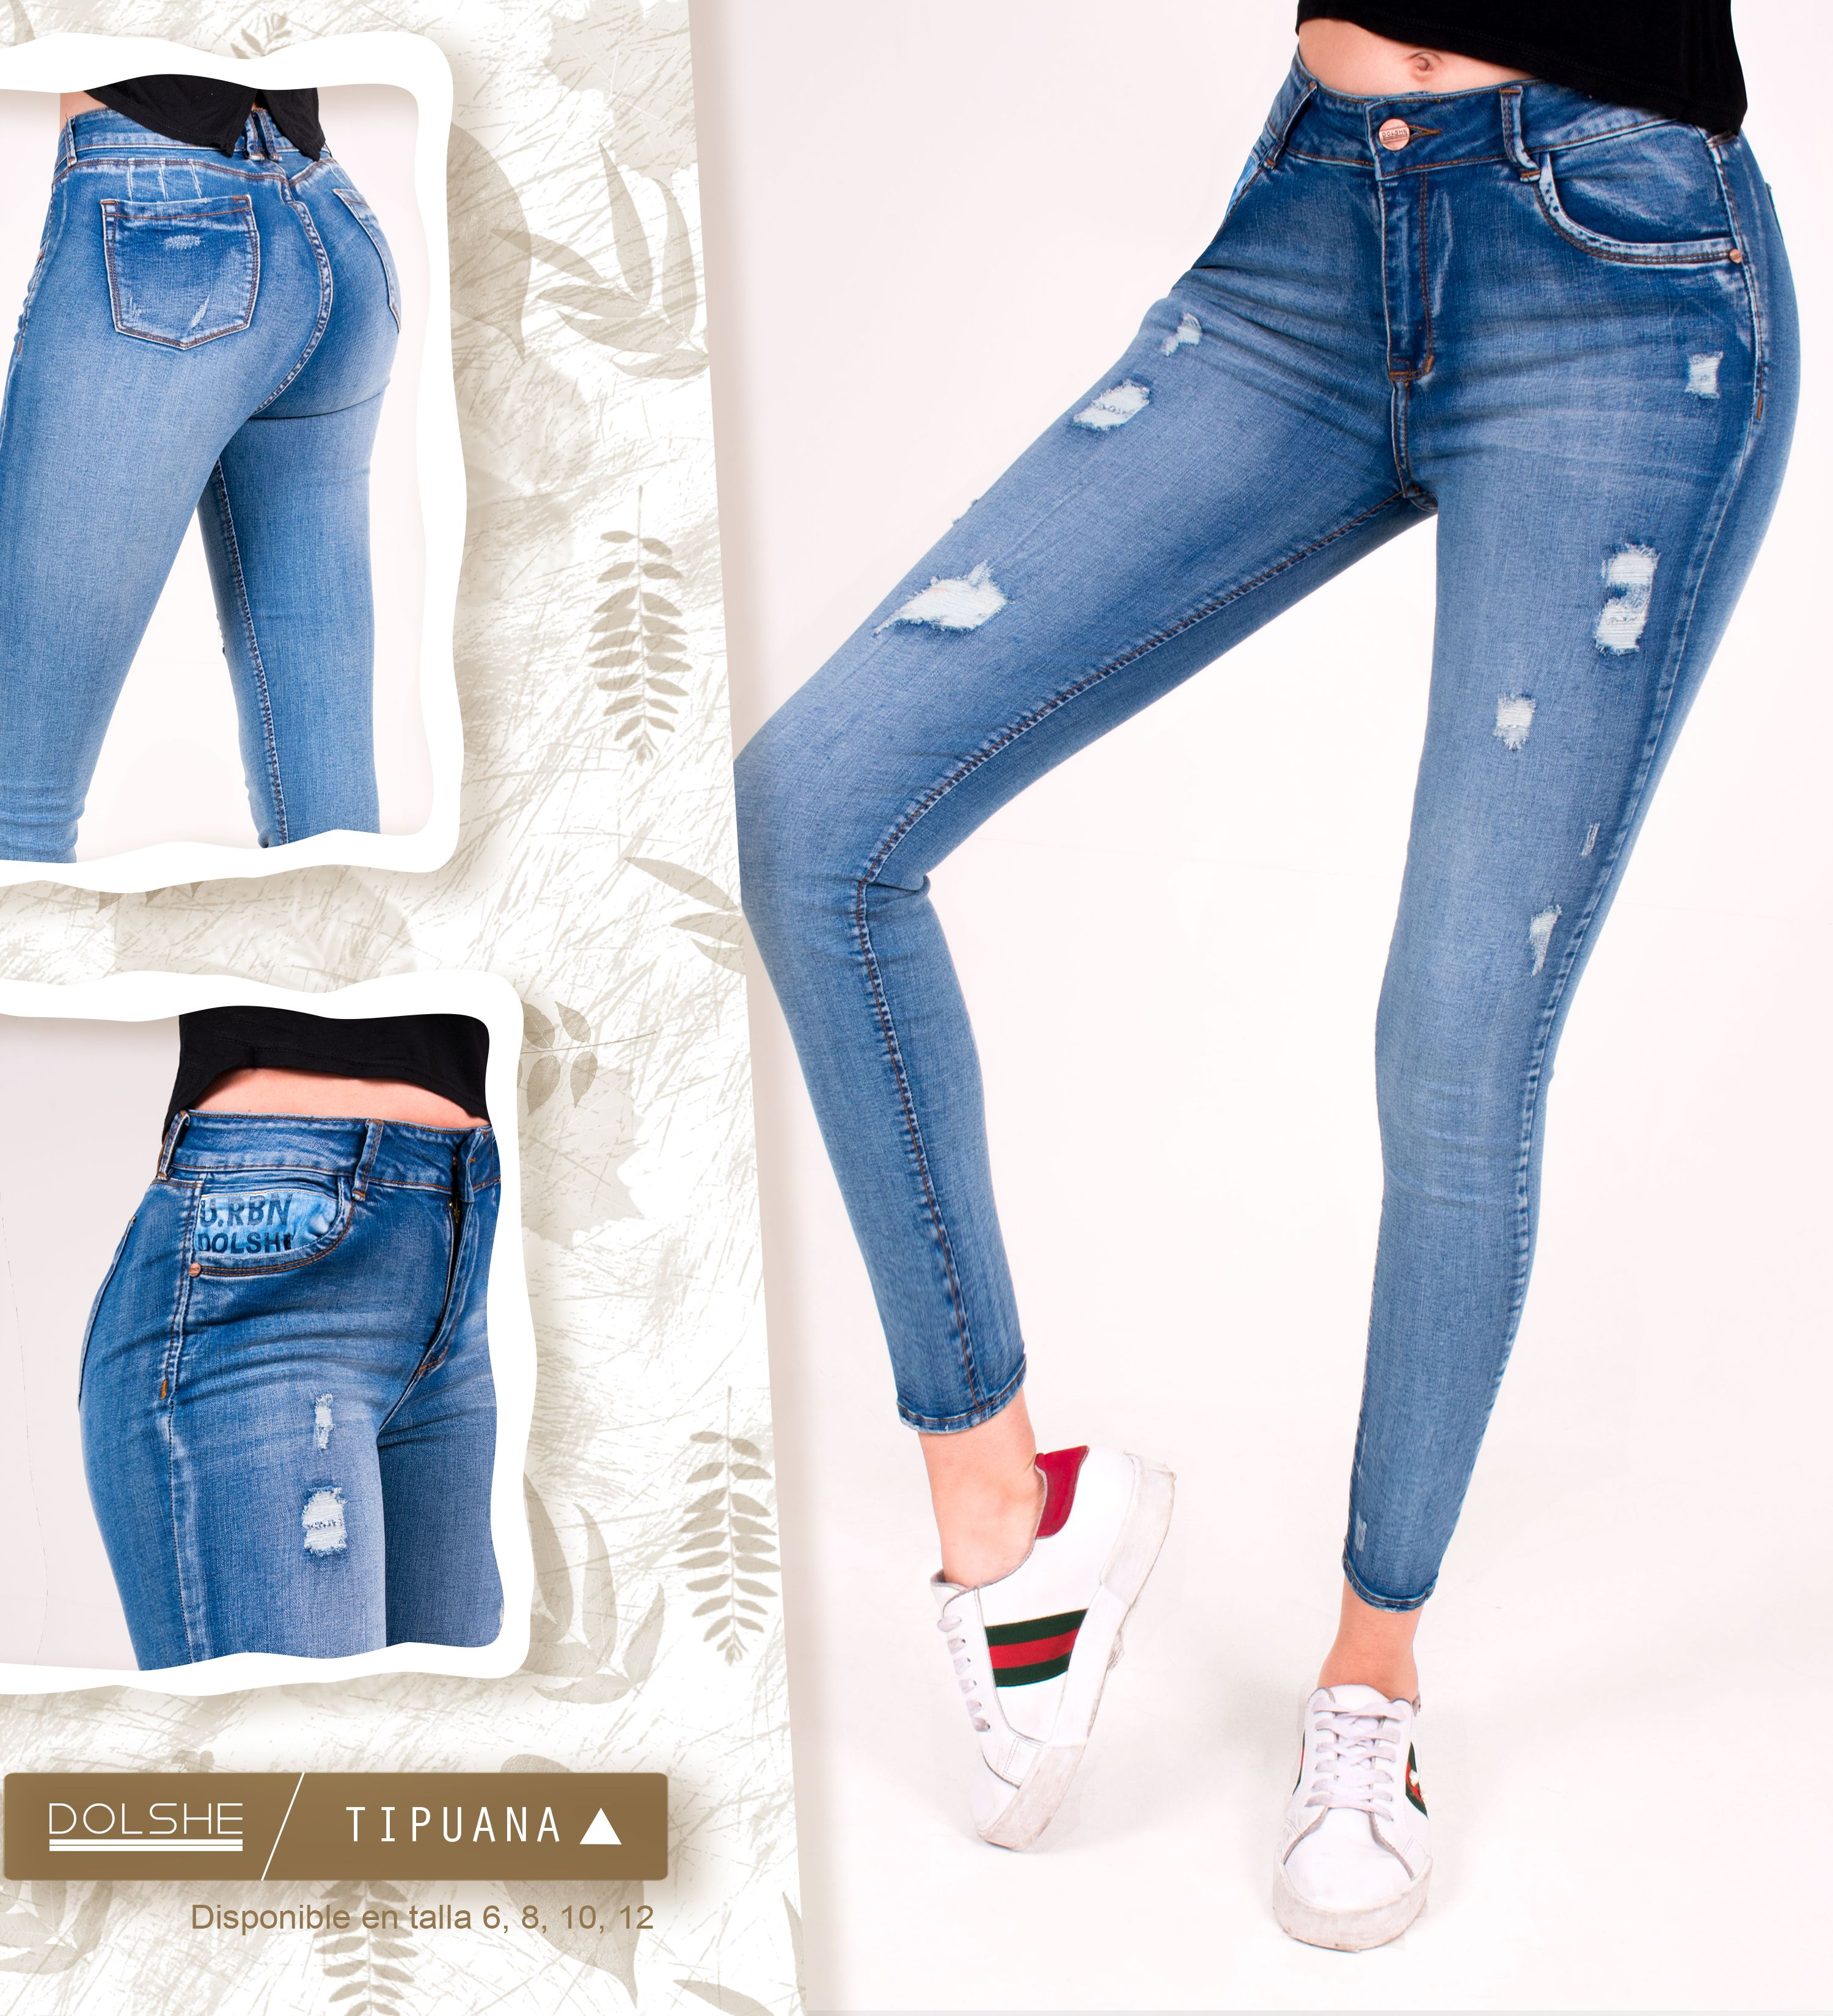 Jeans Skinny Y Con Horma Inteligente Cute Outfits Clothes Pants